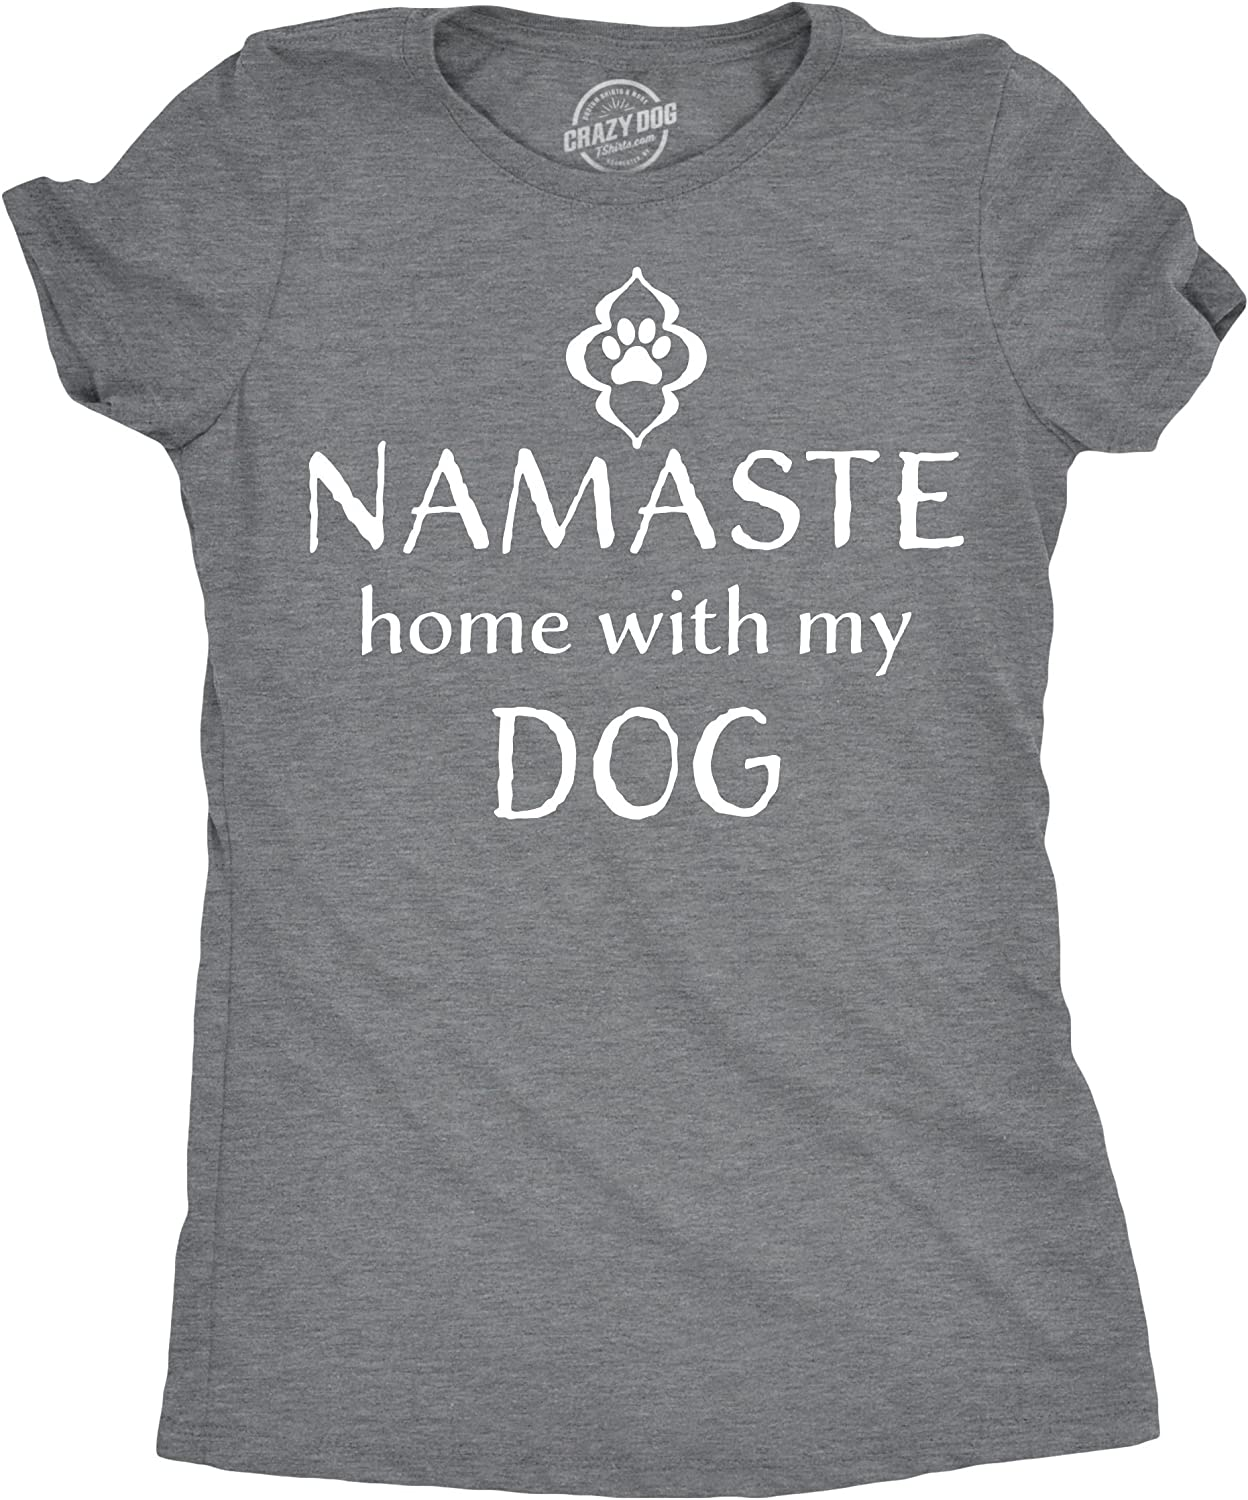 The Best Namaste Home With My Dog Tshirt